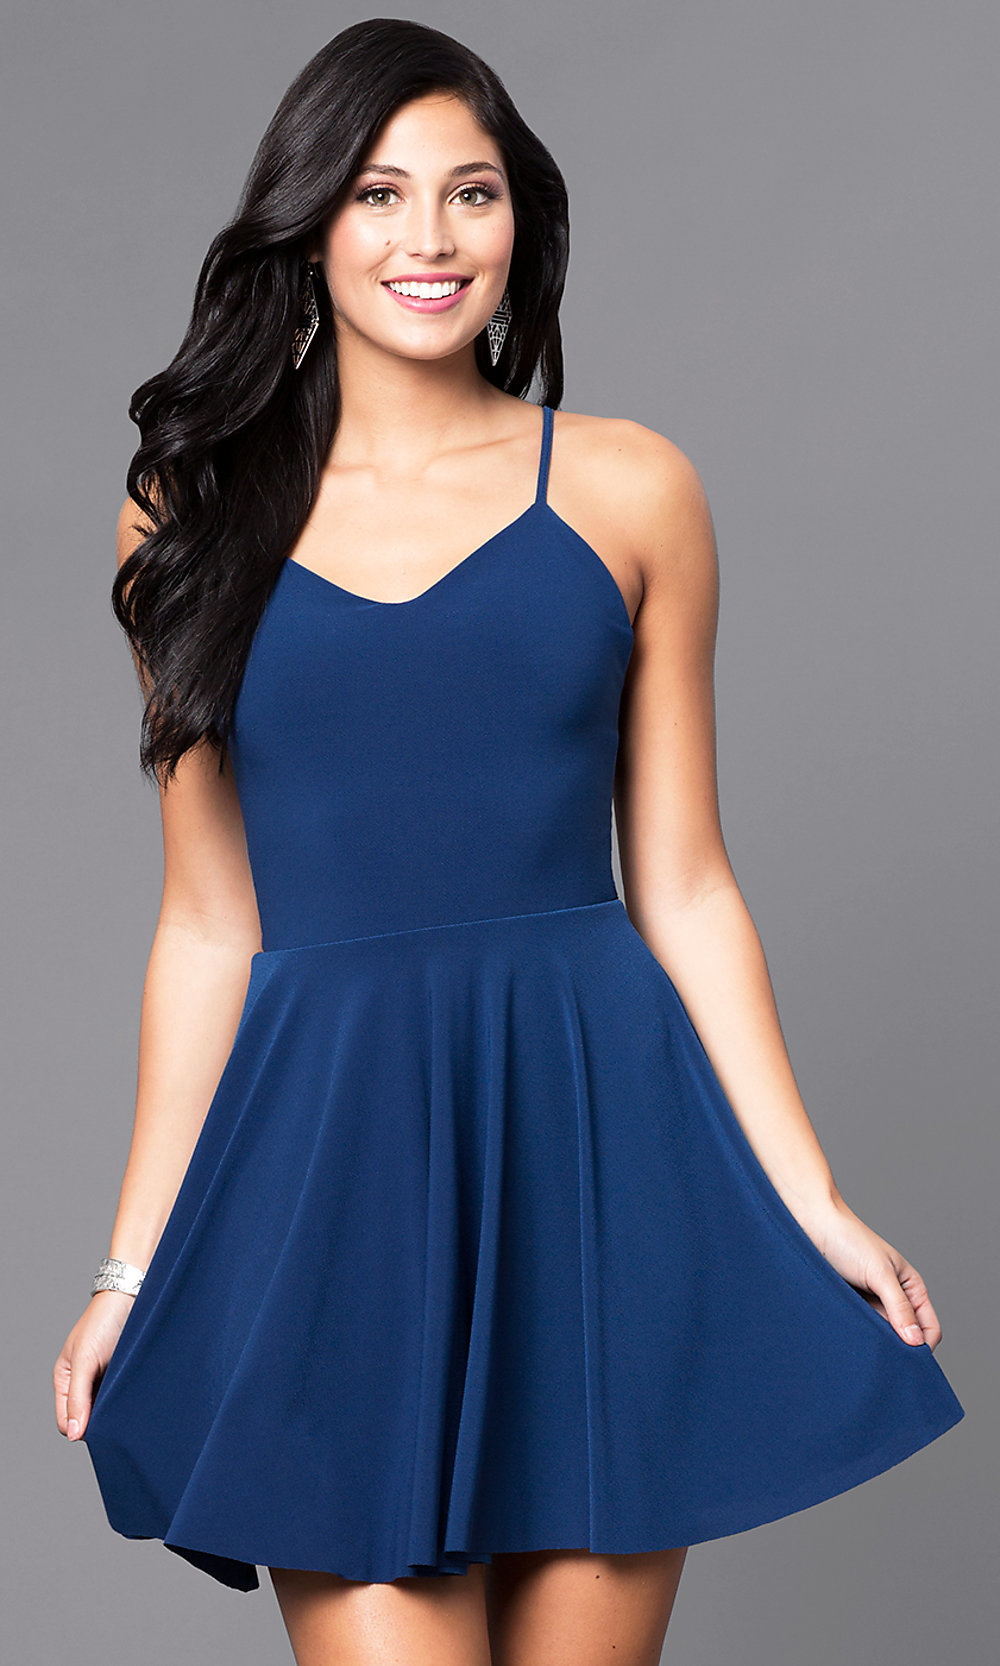 Strappy Back Short A Line Party Dress Promgirl